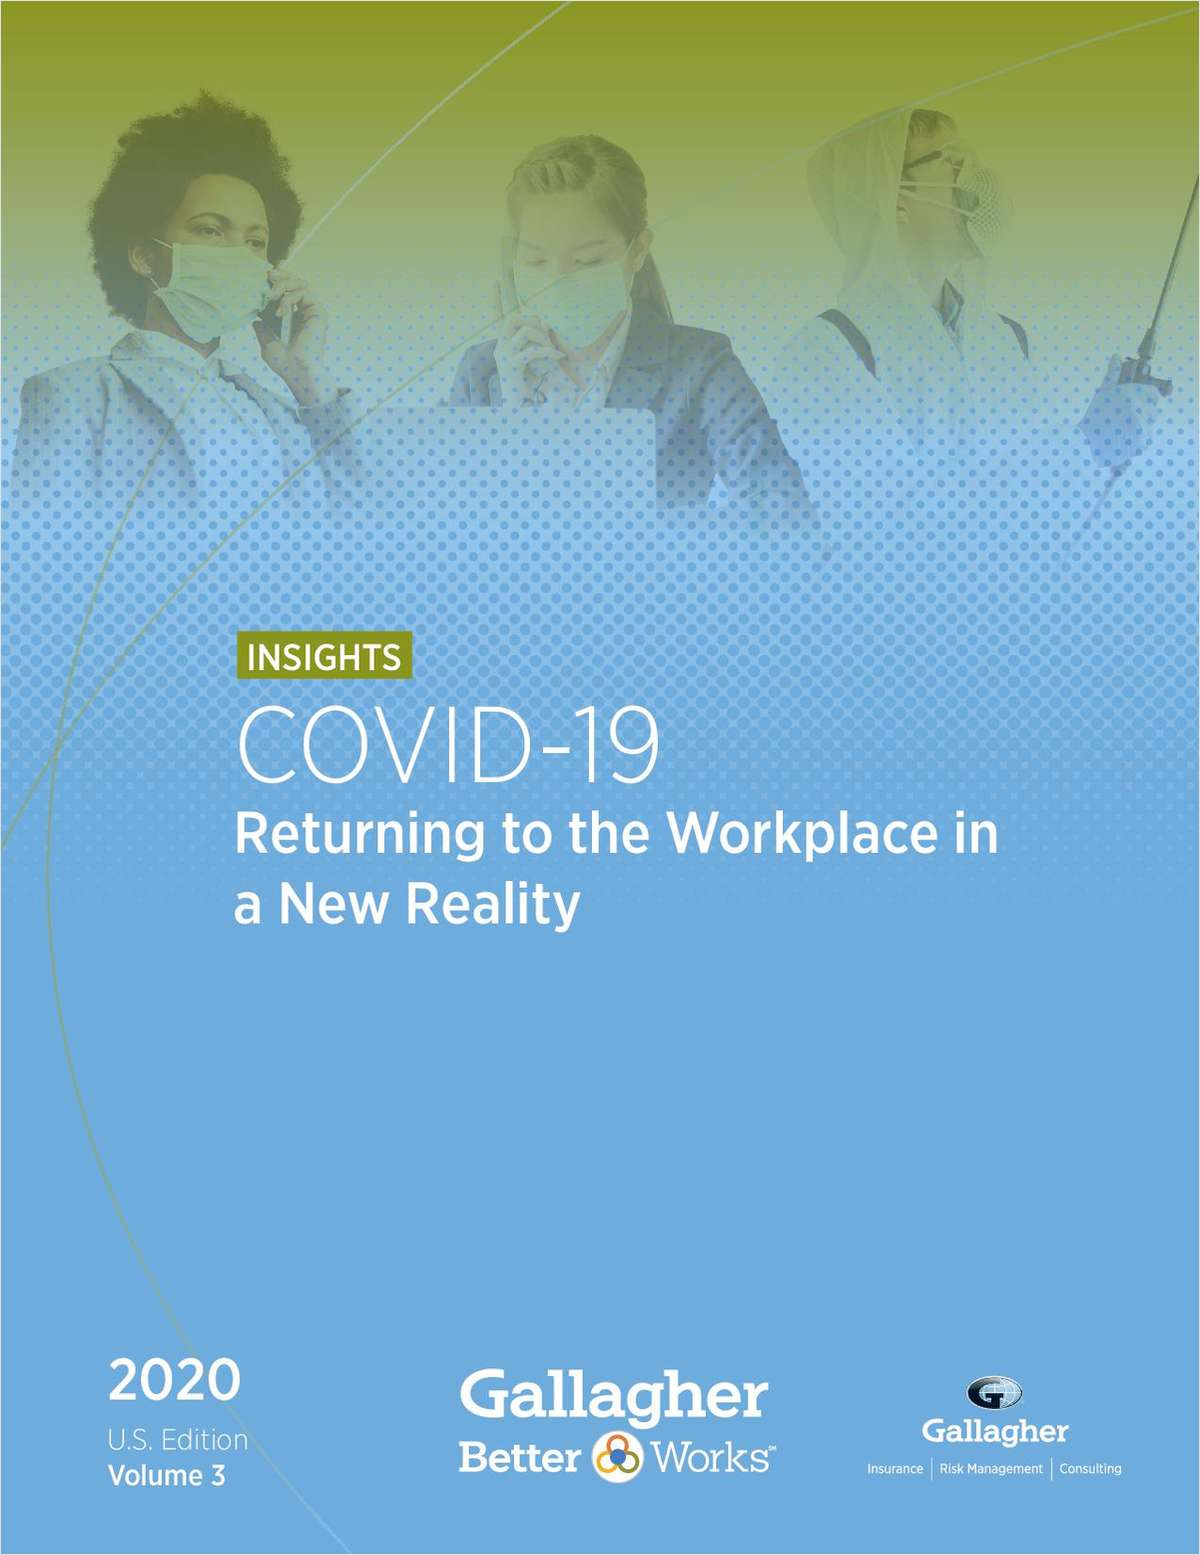 COVID-19: Returning to the Workplace in a New Reality